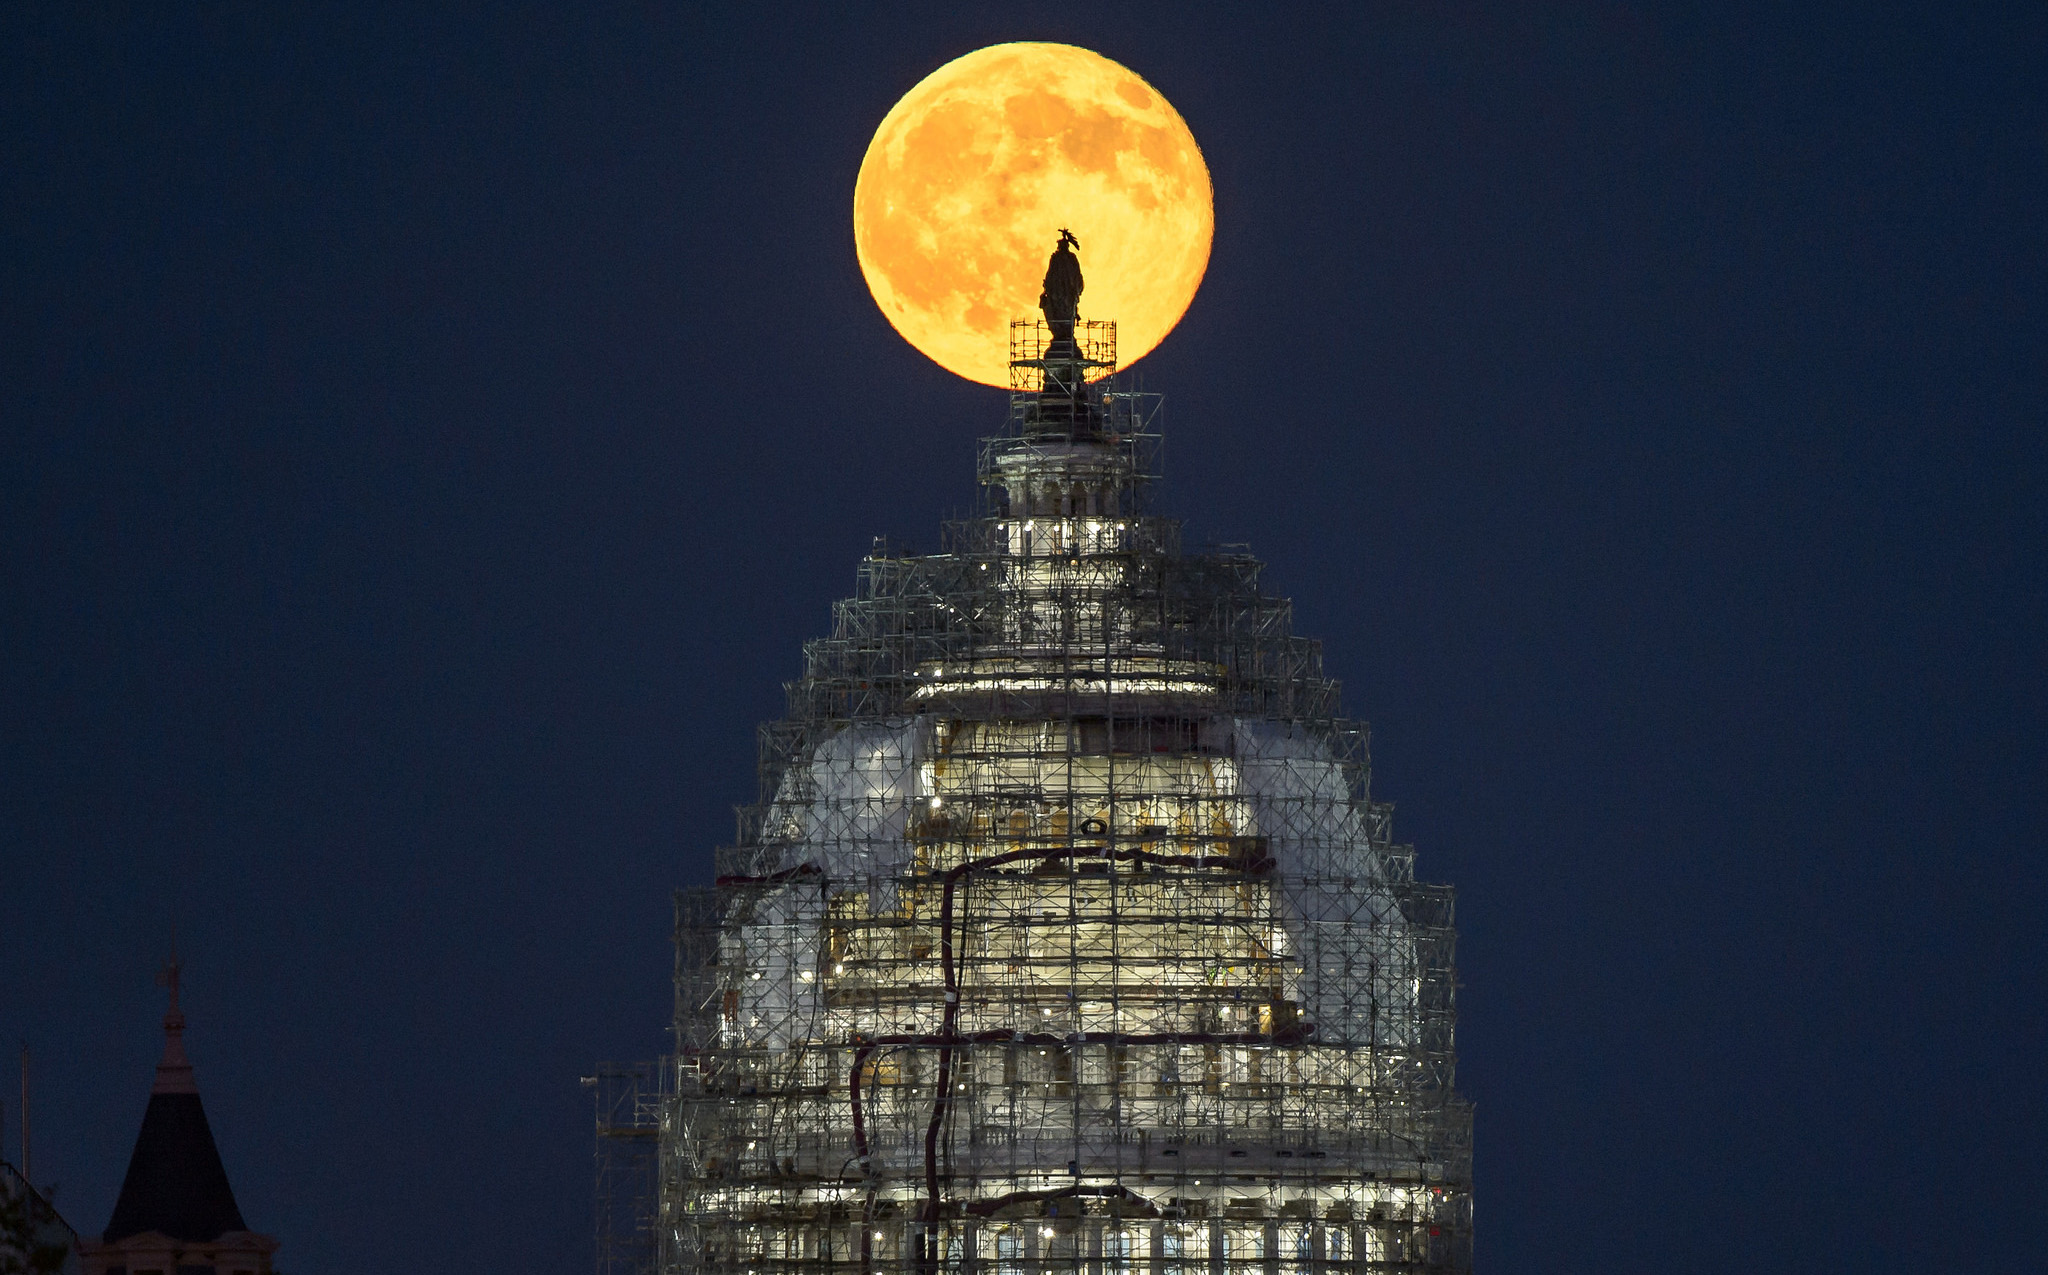 "The ""blue moon"" full moon of July 31, 2015 rises behind the dome the U.S. Capitol in this image from NASA photographer Bill Ingalls. The May 21, 2016 full moon is the fourth full moon in spring, which is also known as a ""blue moon."""